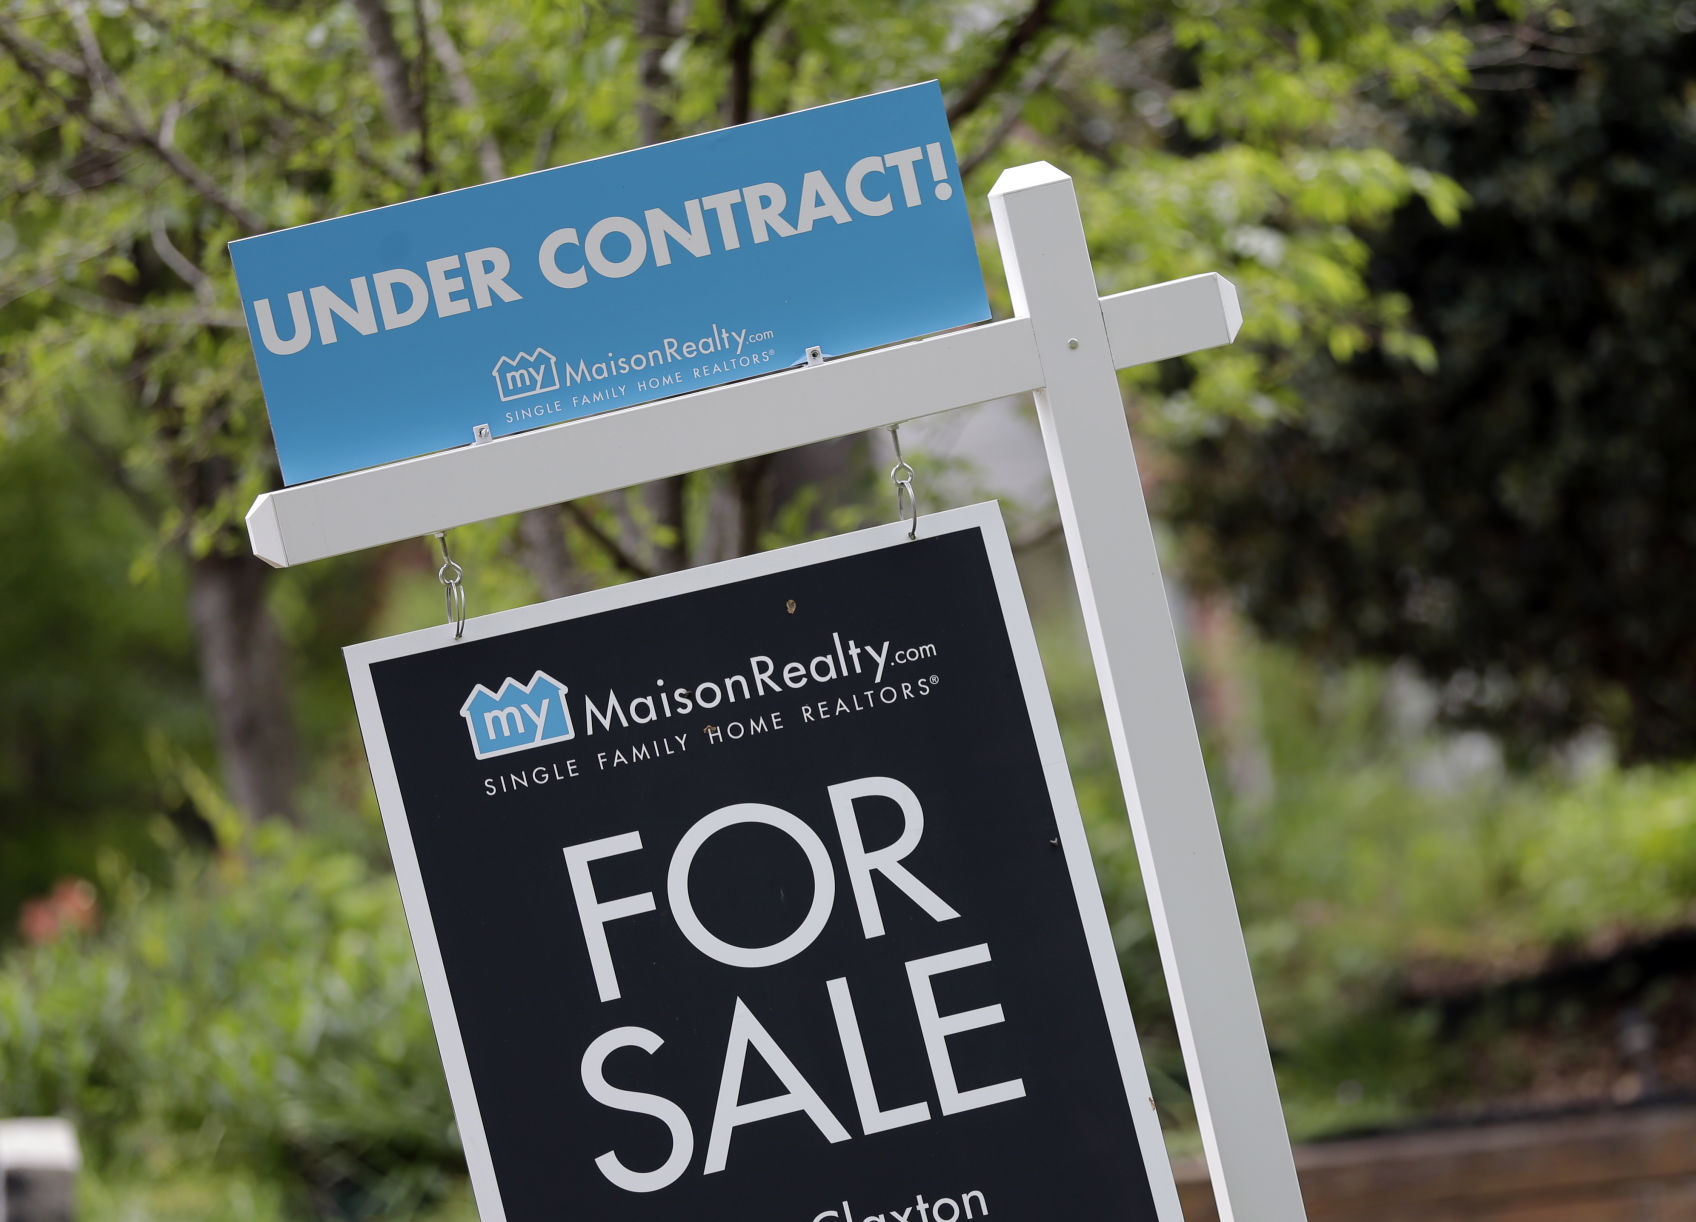 Home sales are down, but not the prices